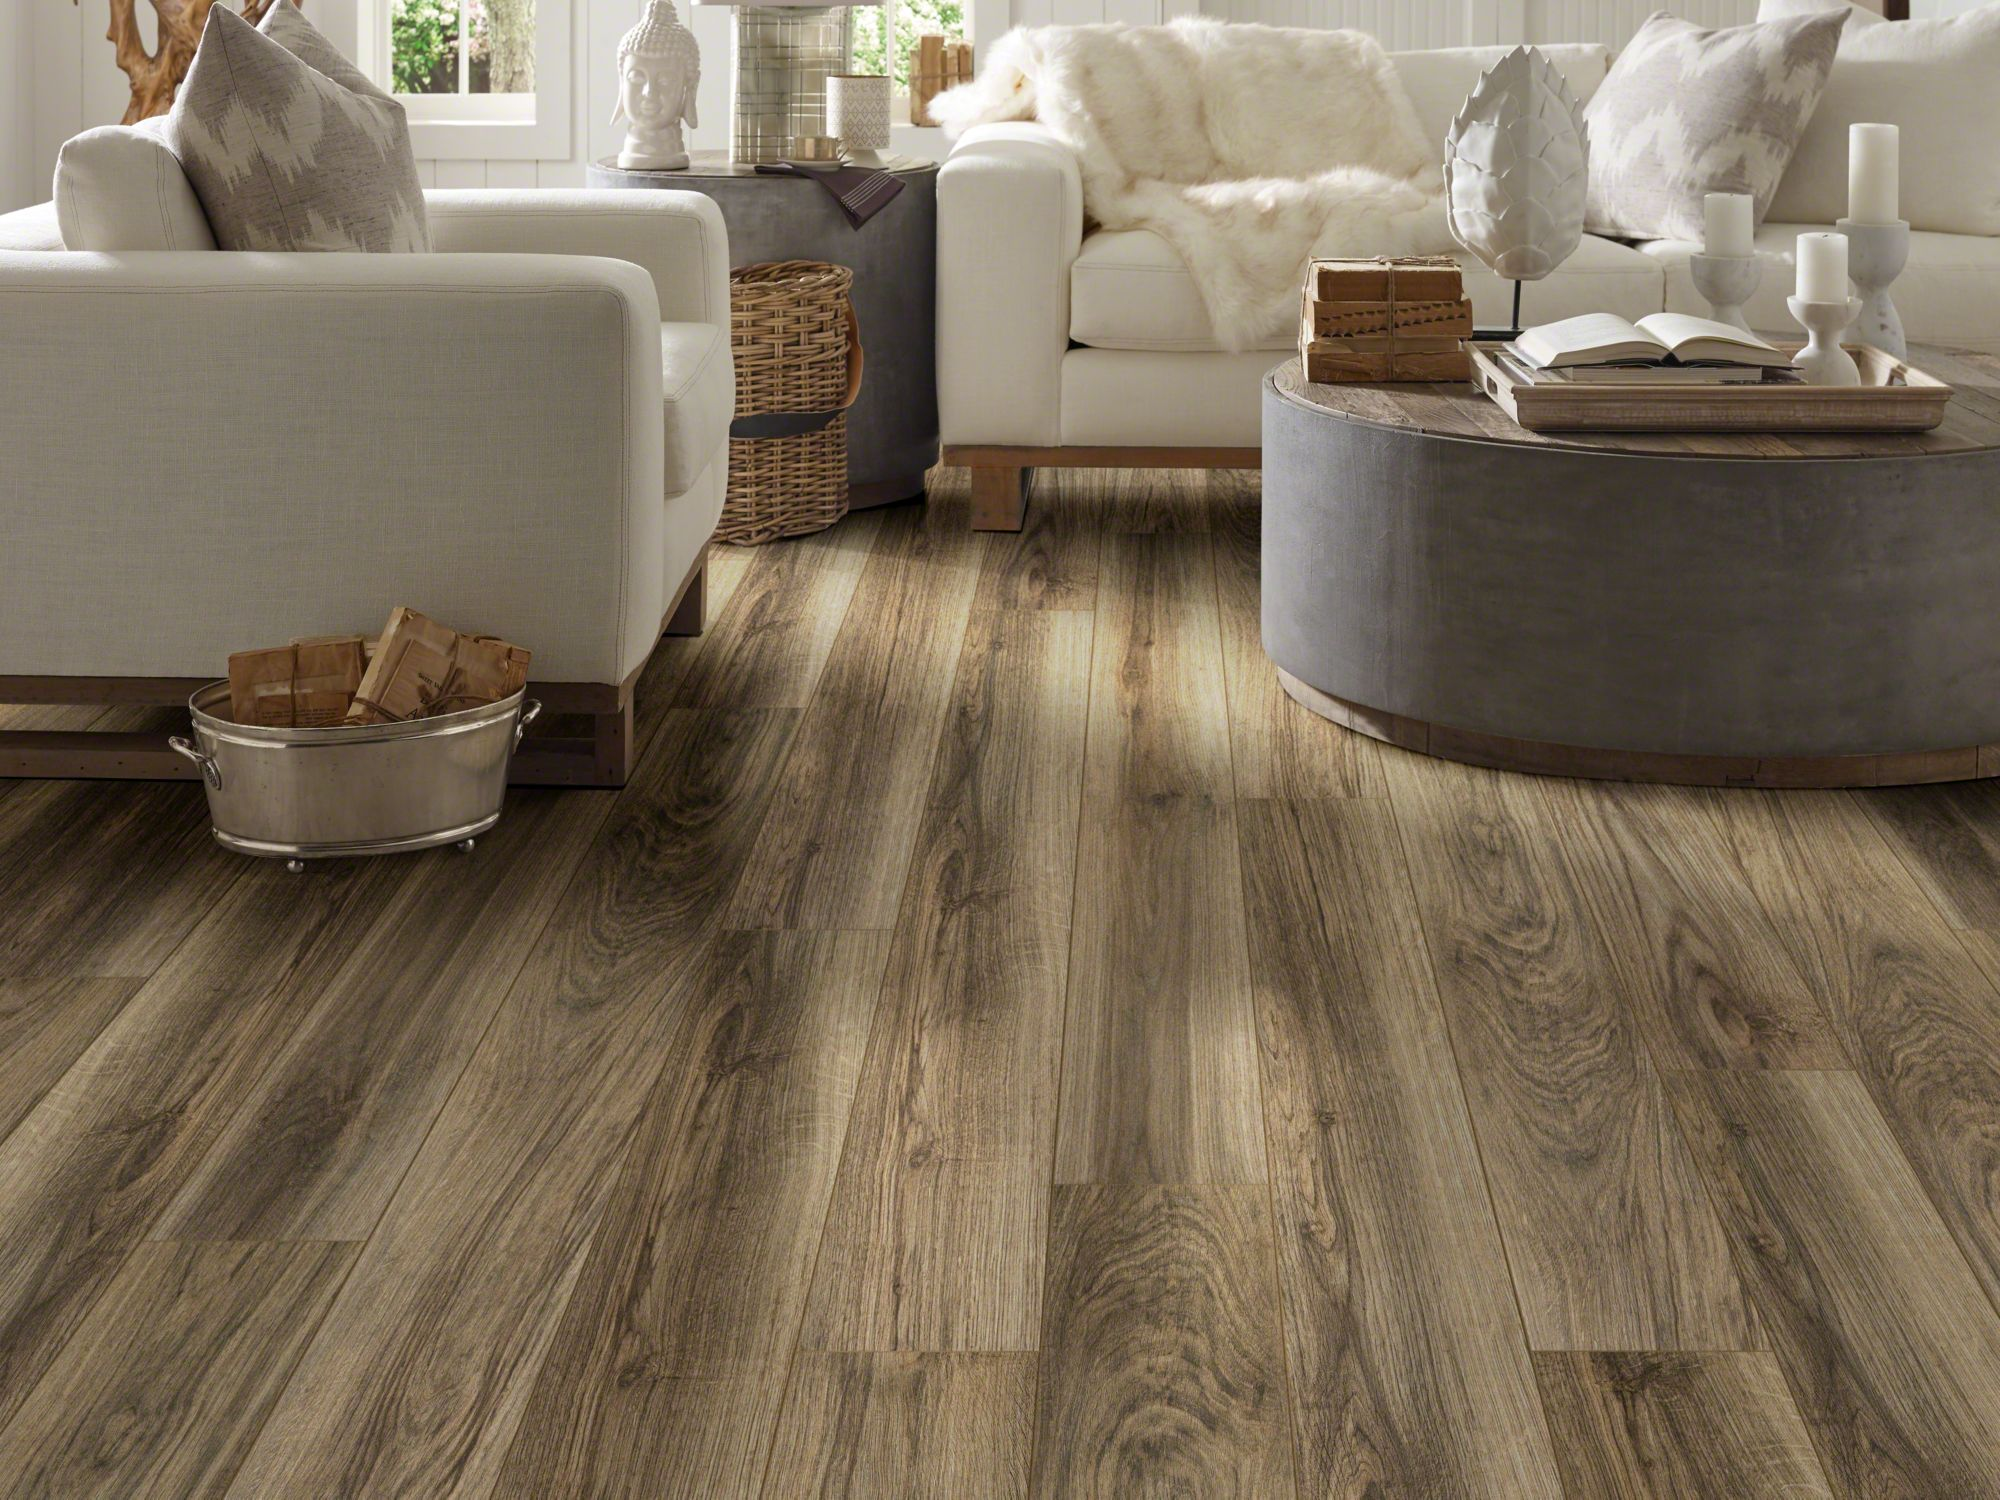 How flooring products can help protect and keep your floor around for many years